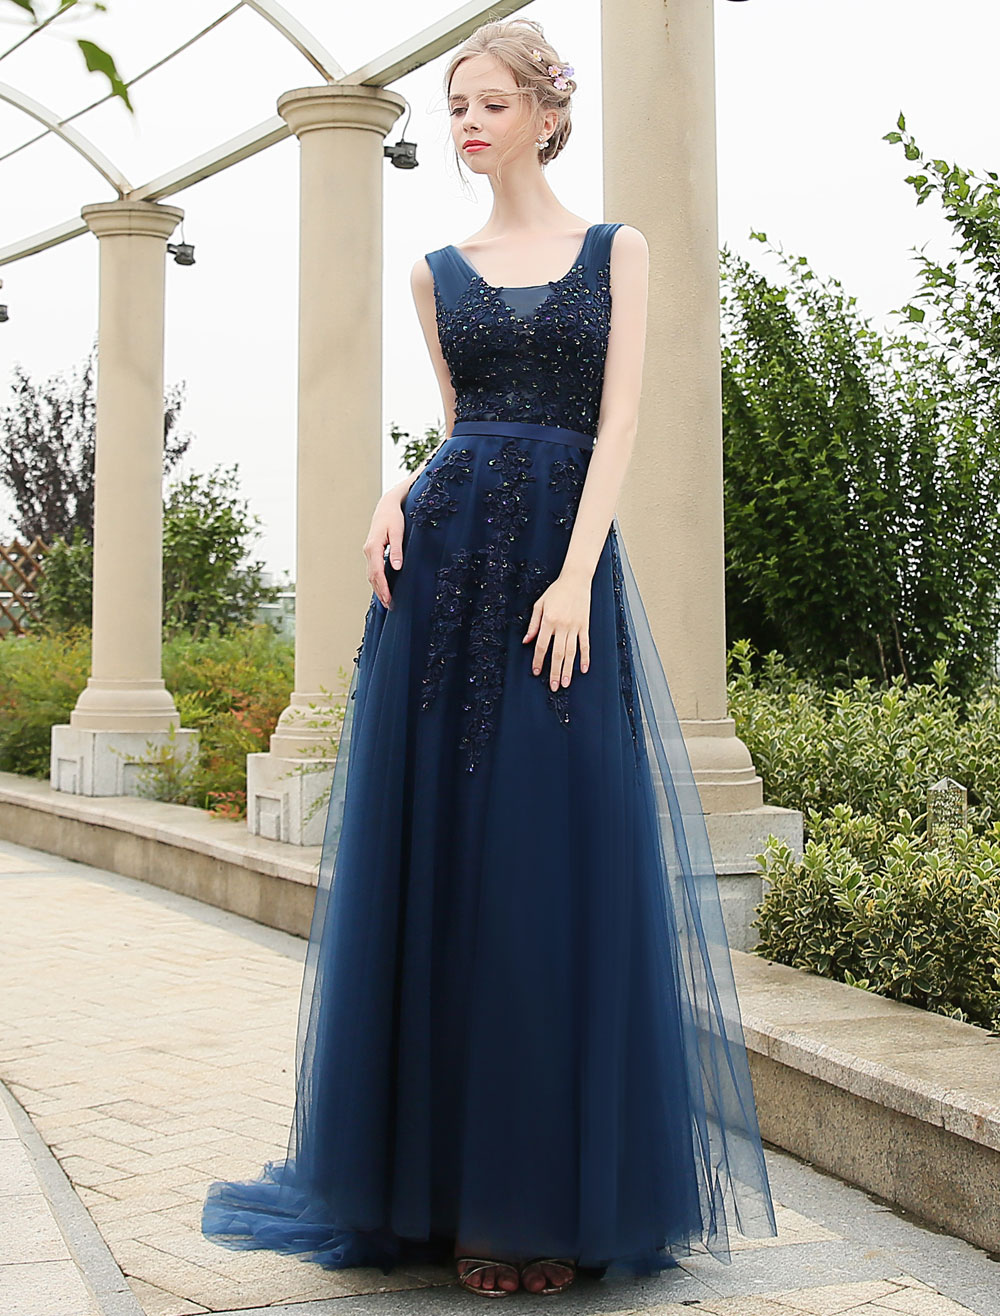 Long Prom Dresses Dark Navy V Neck Backless Lace Beading A Line Tulle Formal Dresses With Train